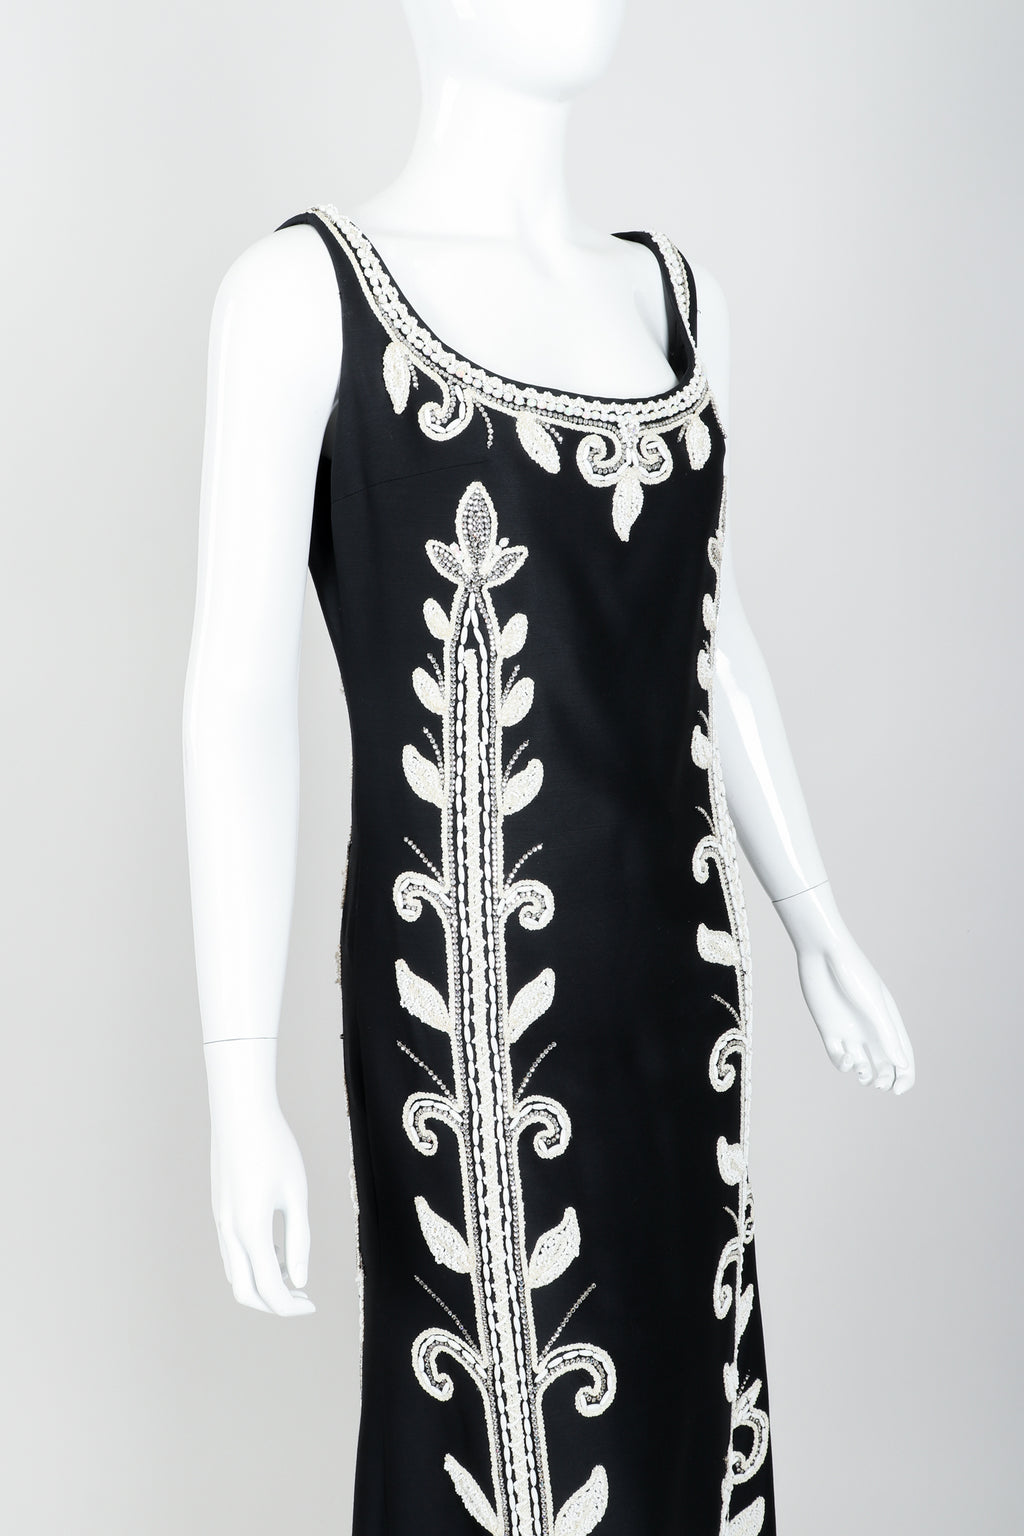 Vintage Mr. Blackwell Rhinestone & Bead Evening Gown Angle at Recess LA